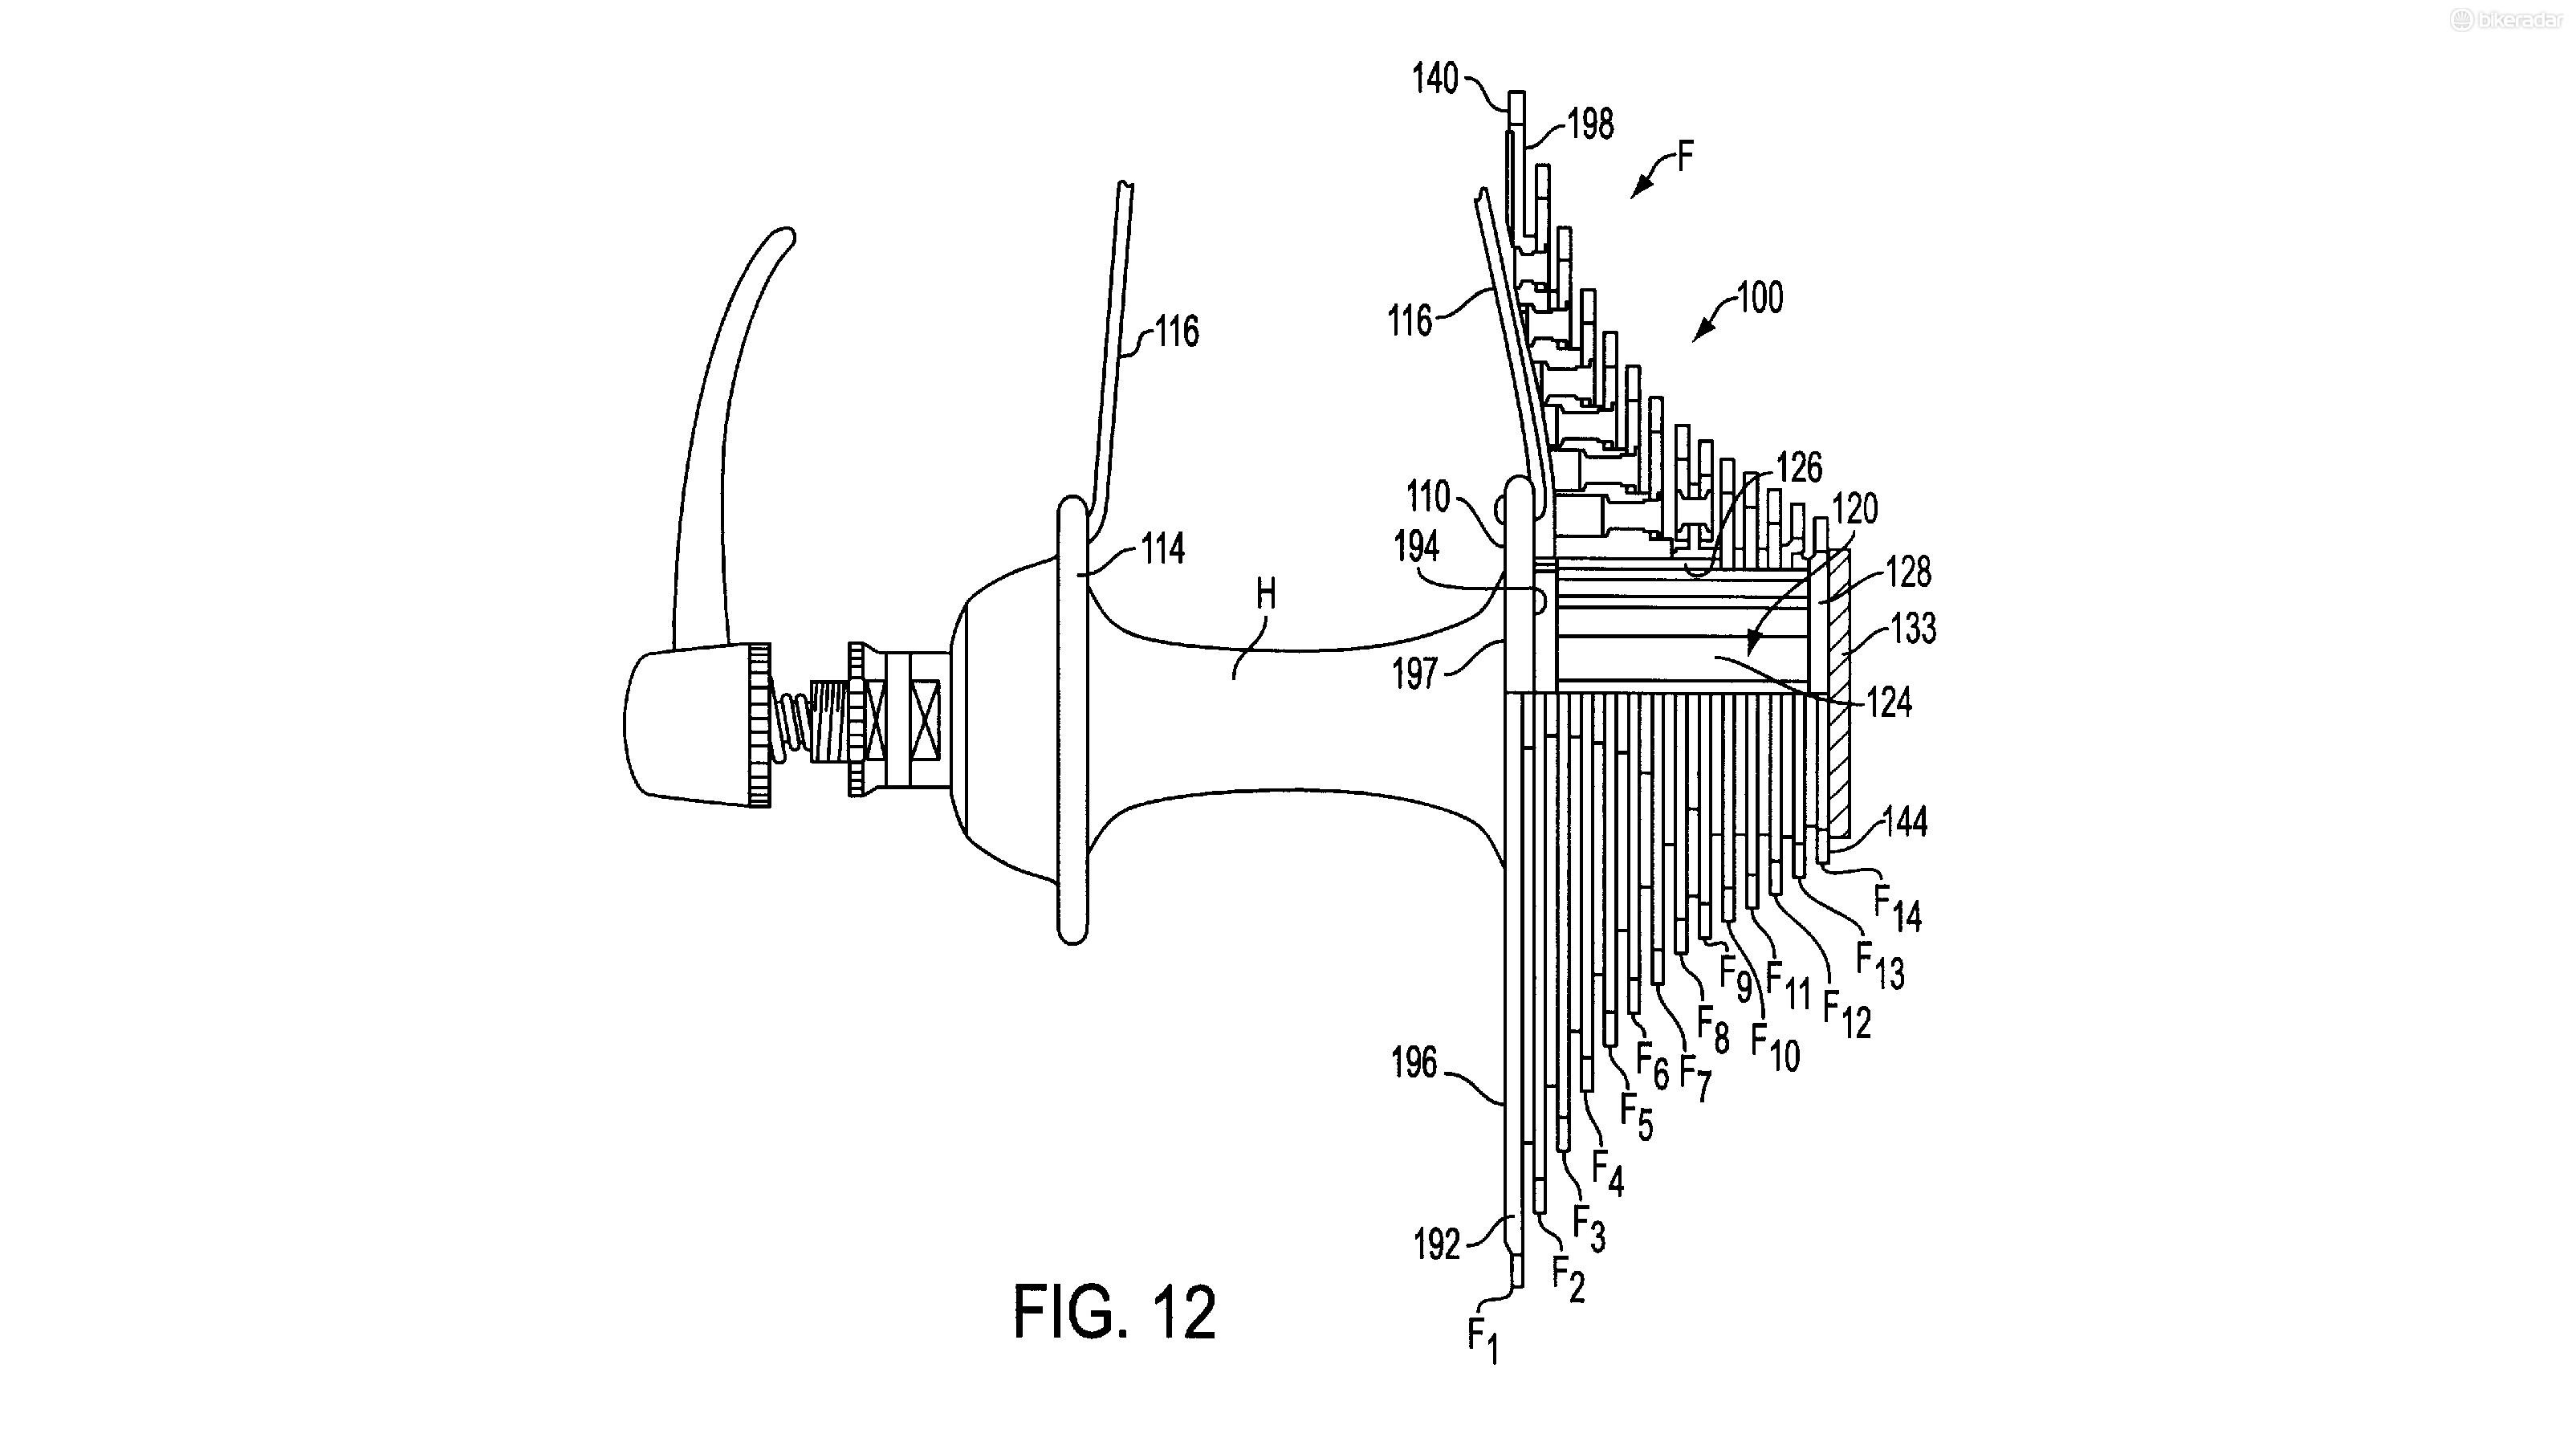 The patent suggests that a 14 speed cluster could fit within the constraints of a regular free hub body